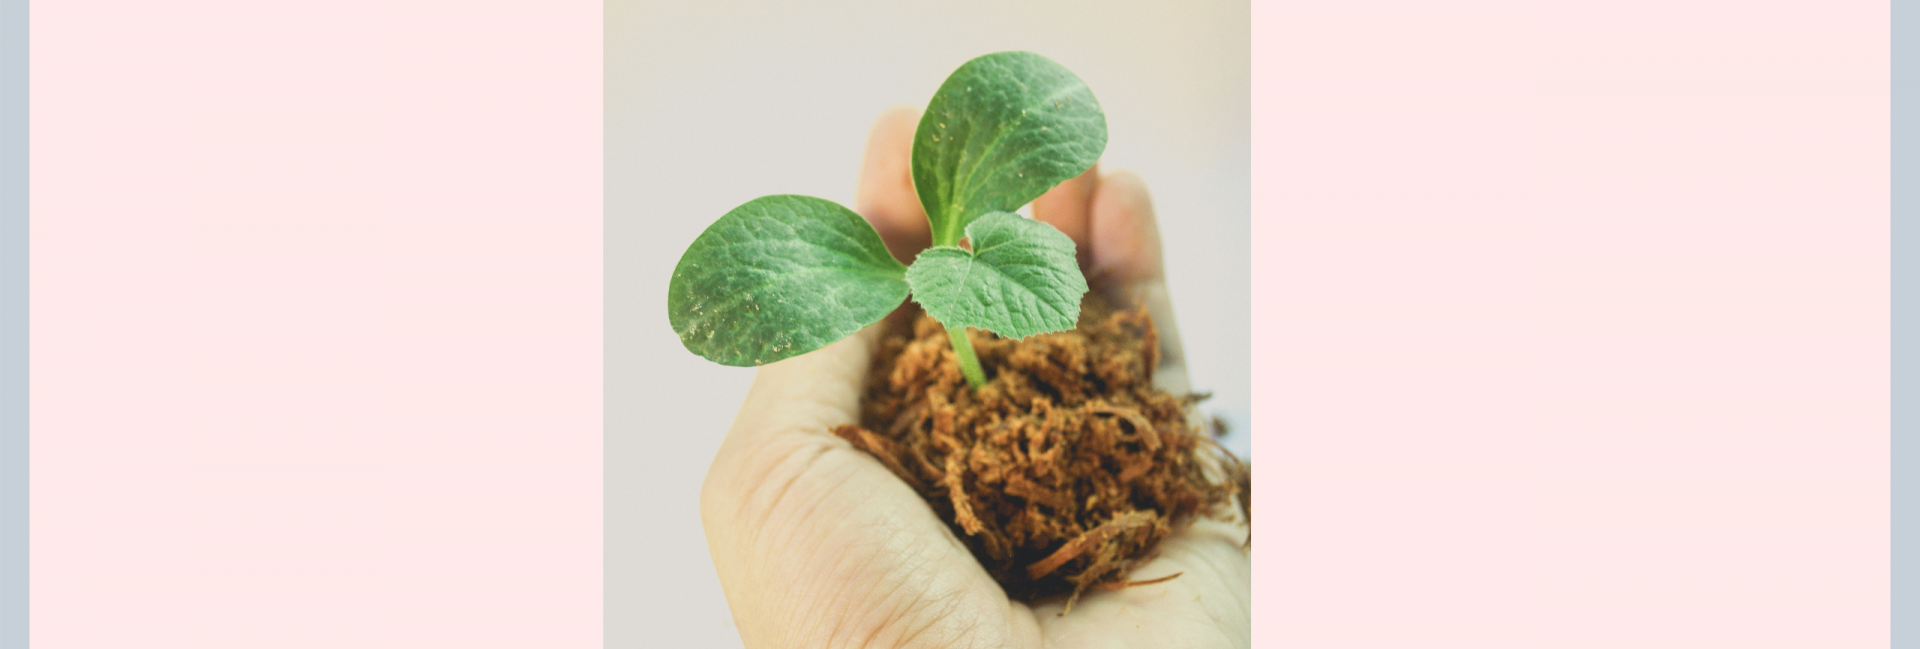 A hand holding a plant in soil representing growing